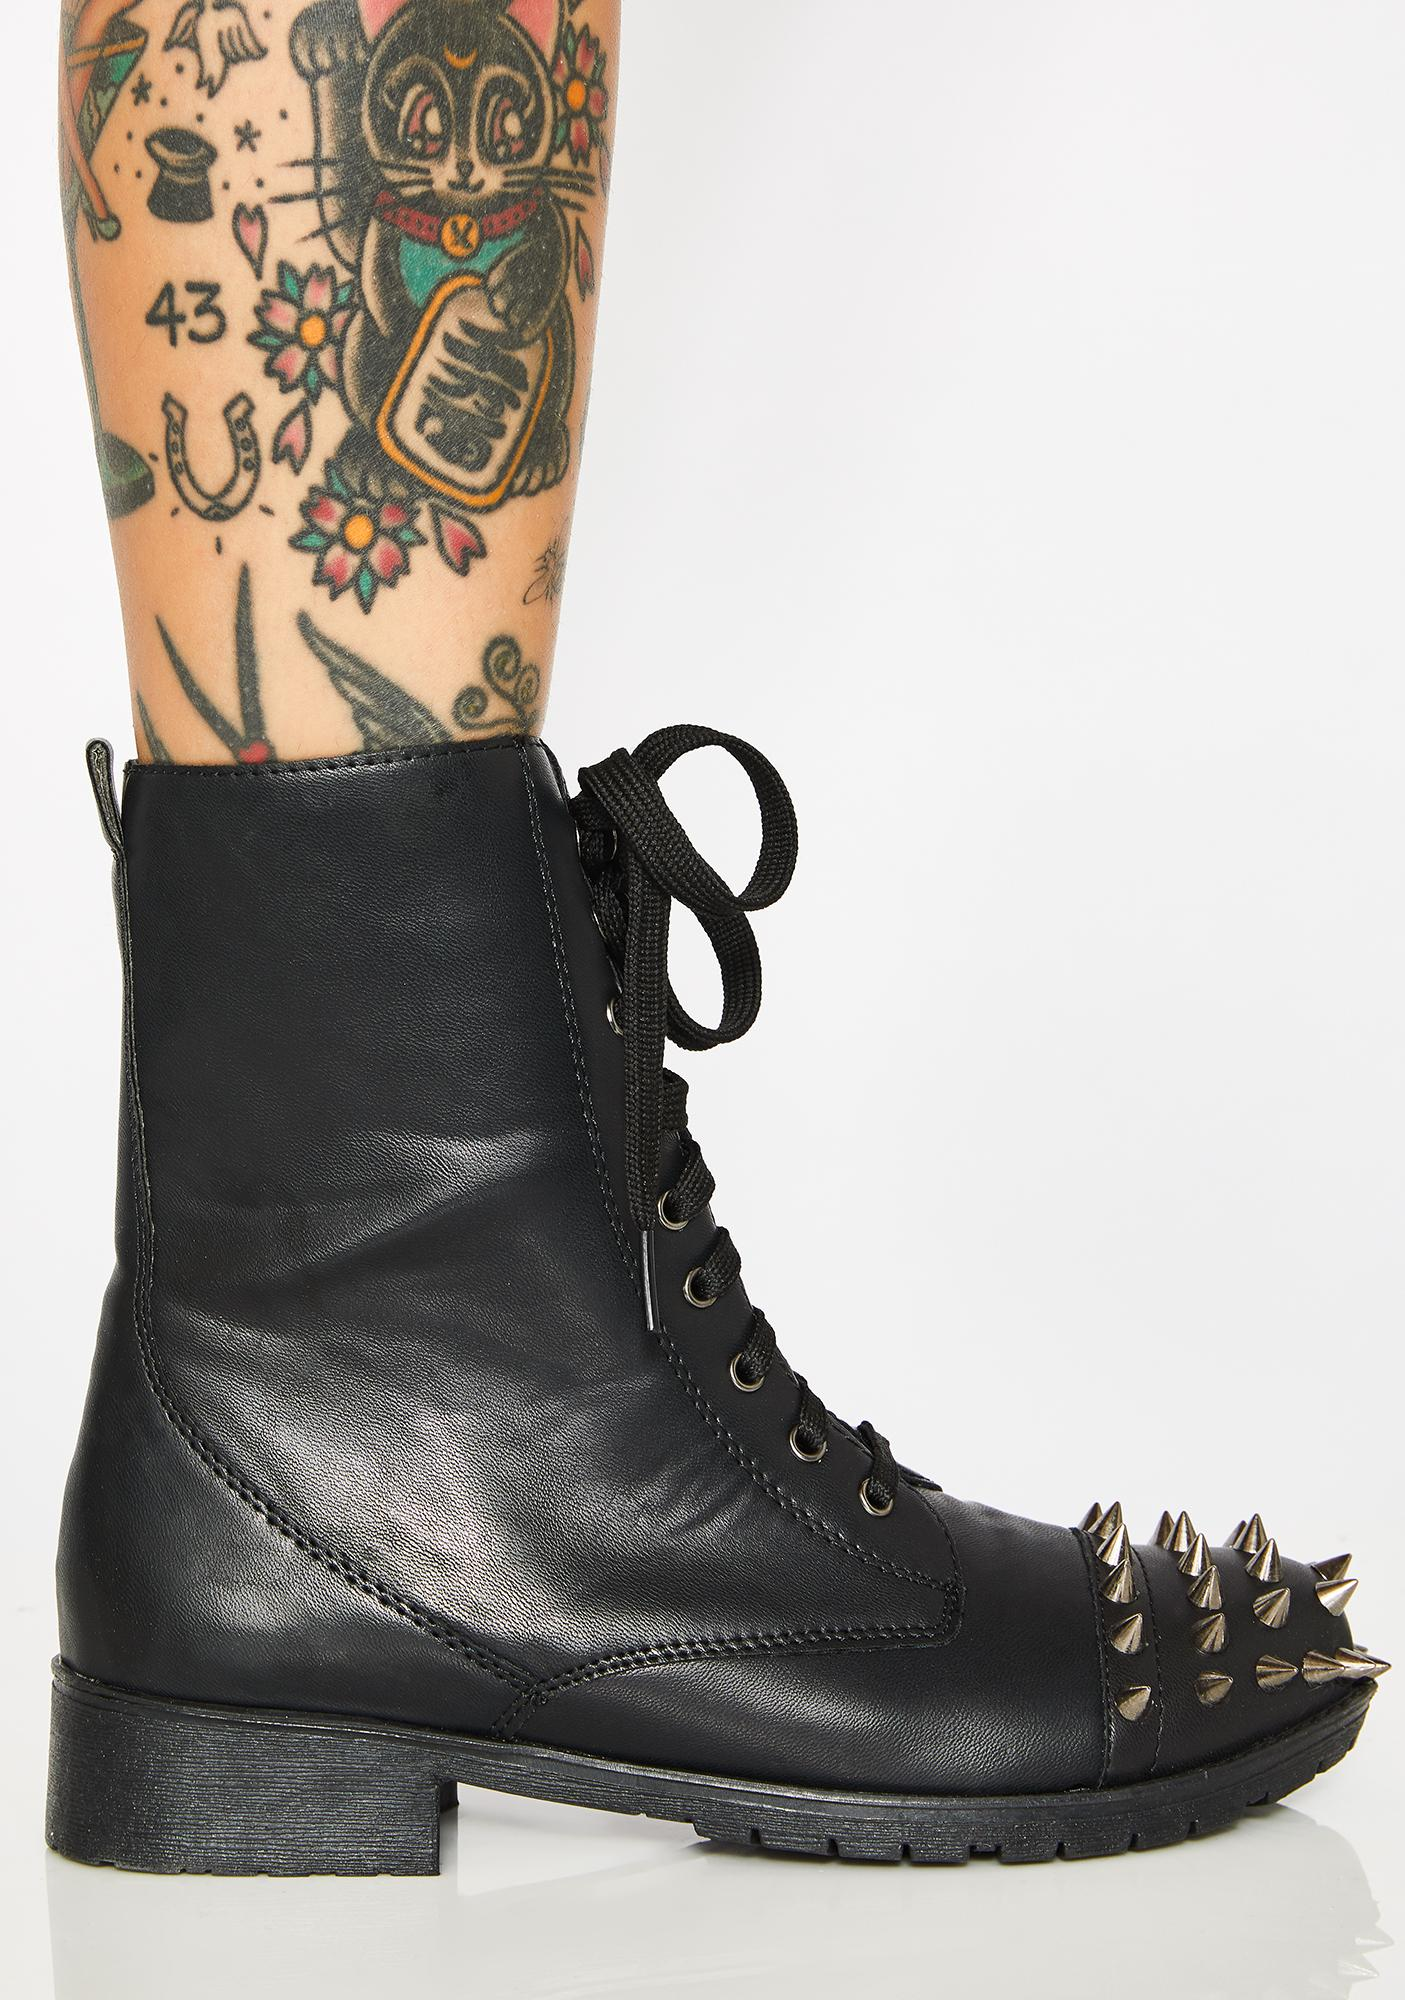 Kick'Em To The Curb Spiked Boots